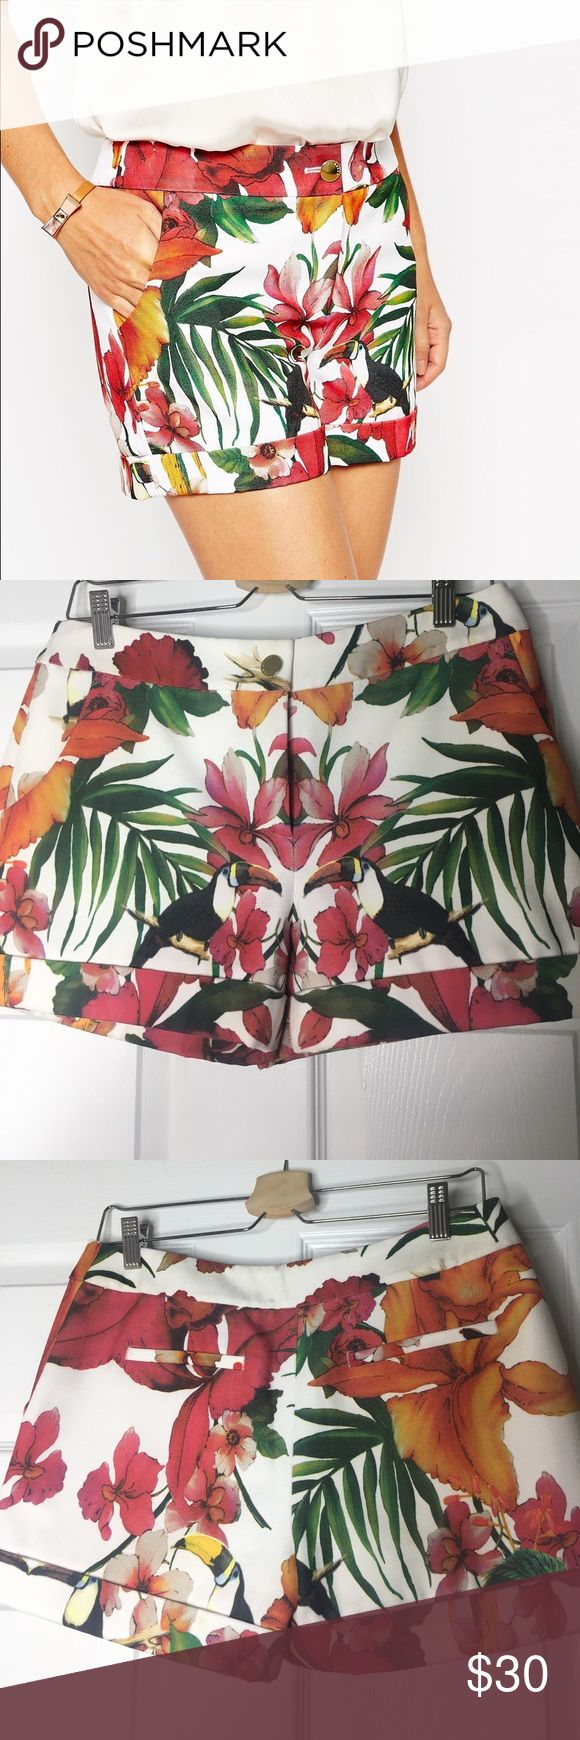 Ted Baker Toucan Shorts Ted Baker Tropical Toucan Shorts. Only worn once! Mid Rise shorts! Comes with pockets! Ted Baker size 2 is equivalent to a US size 6. Ted Baker Shorts